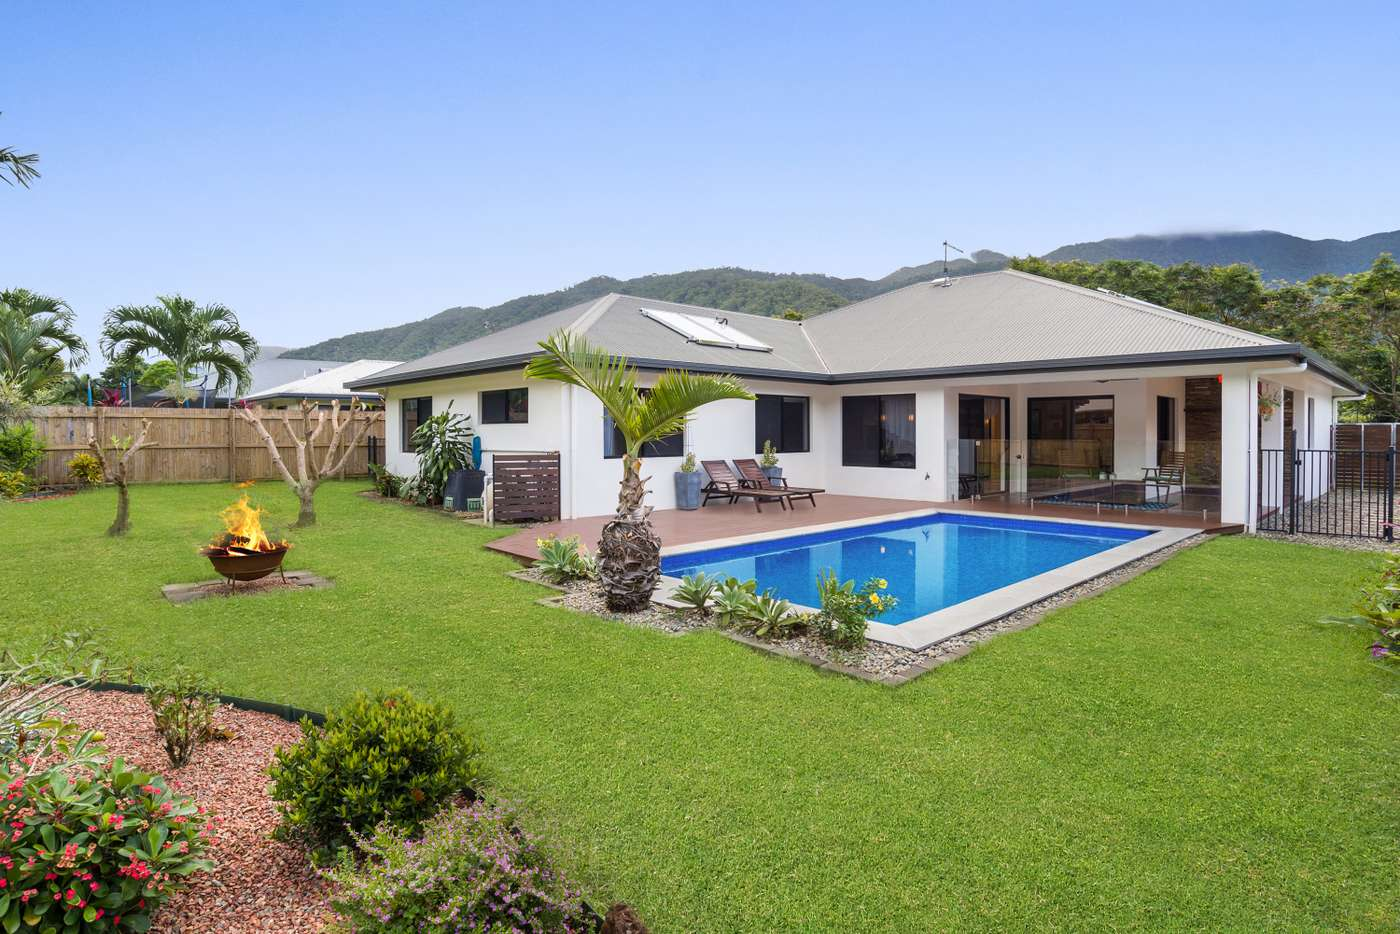 Fifth view of Homely house listing, 110 Xavier Herbert Dr, Redlynch QLD 4870